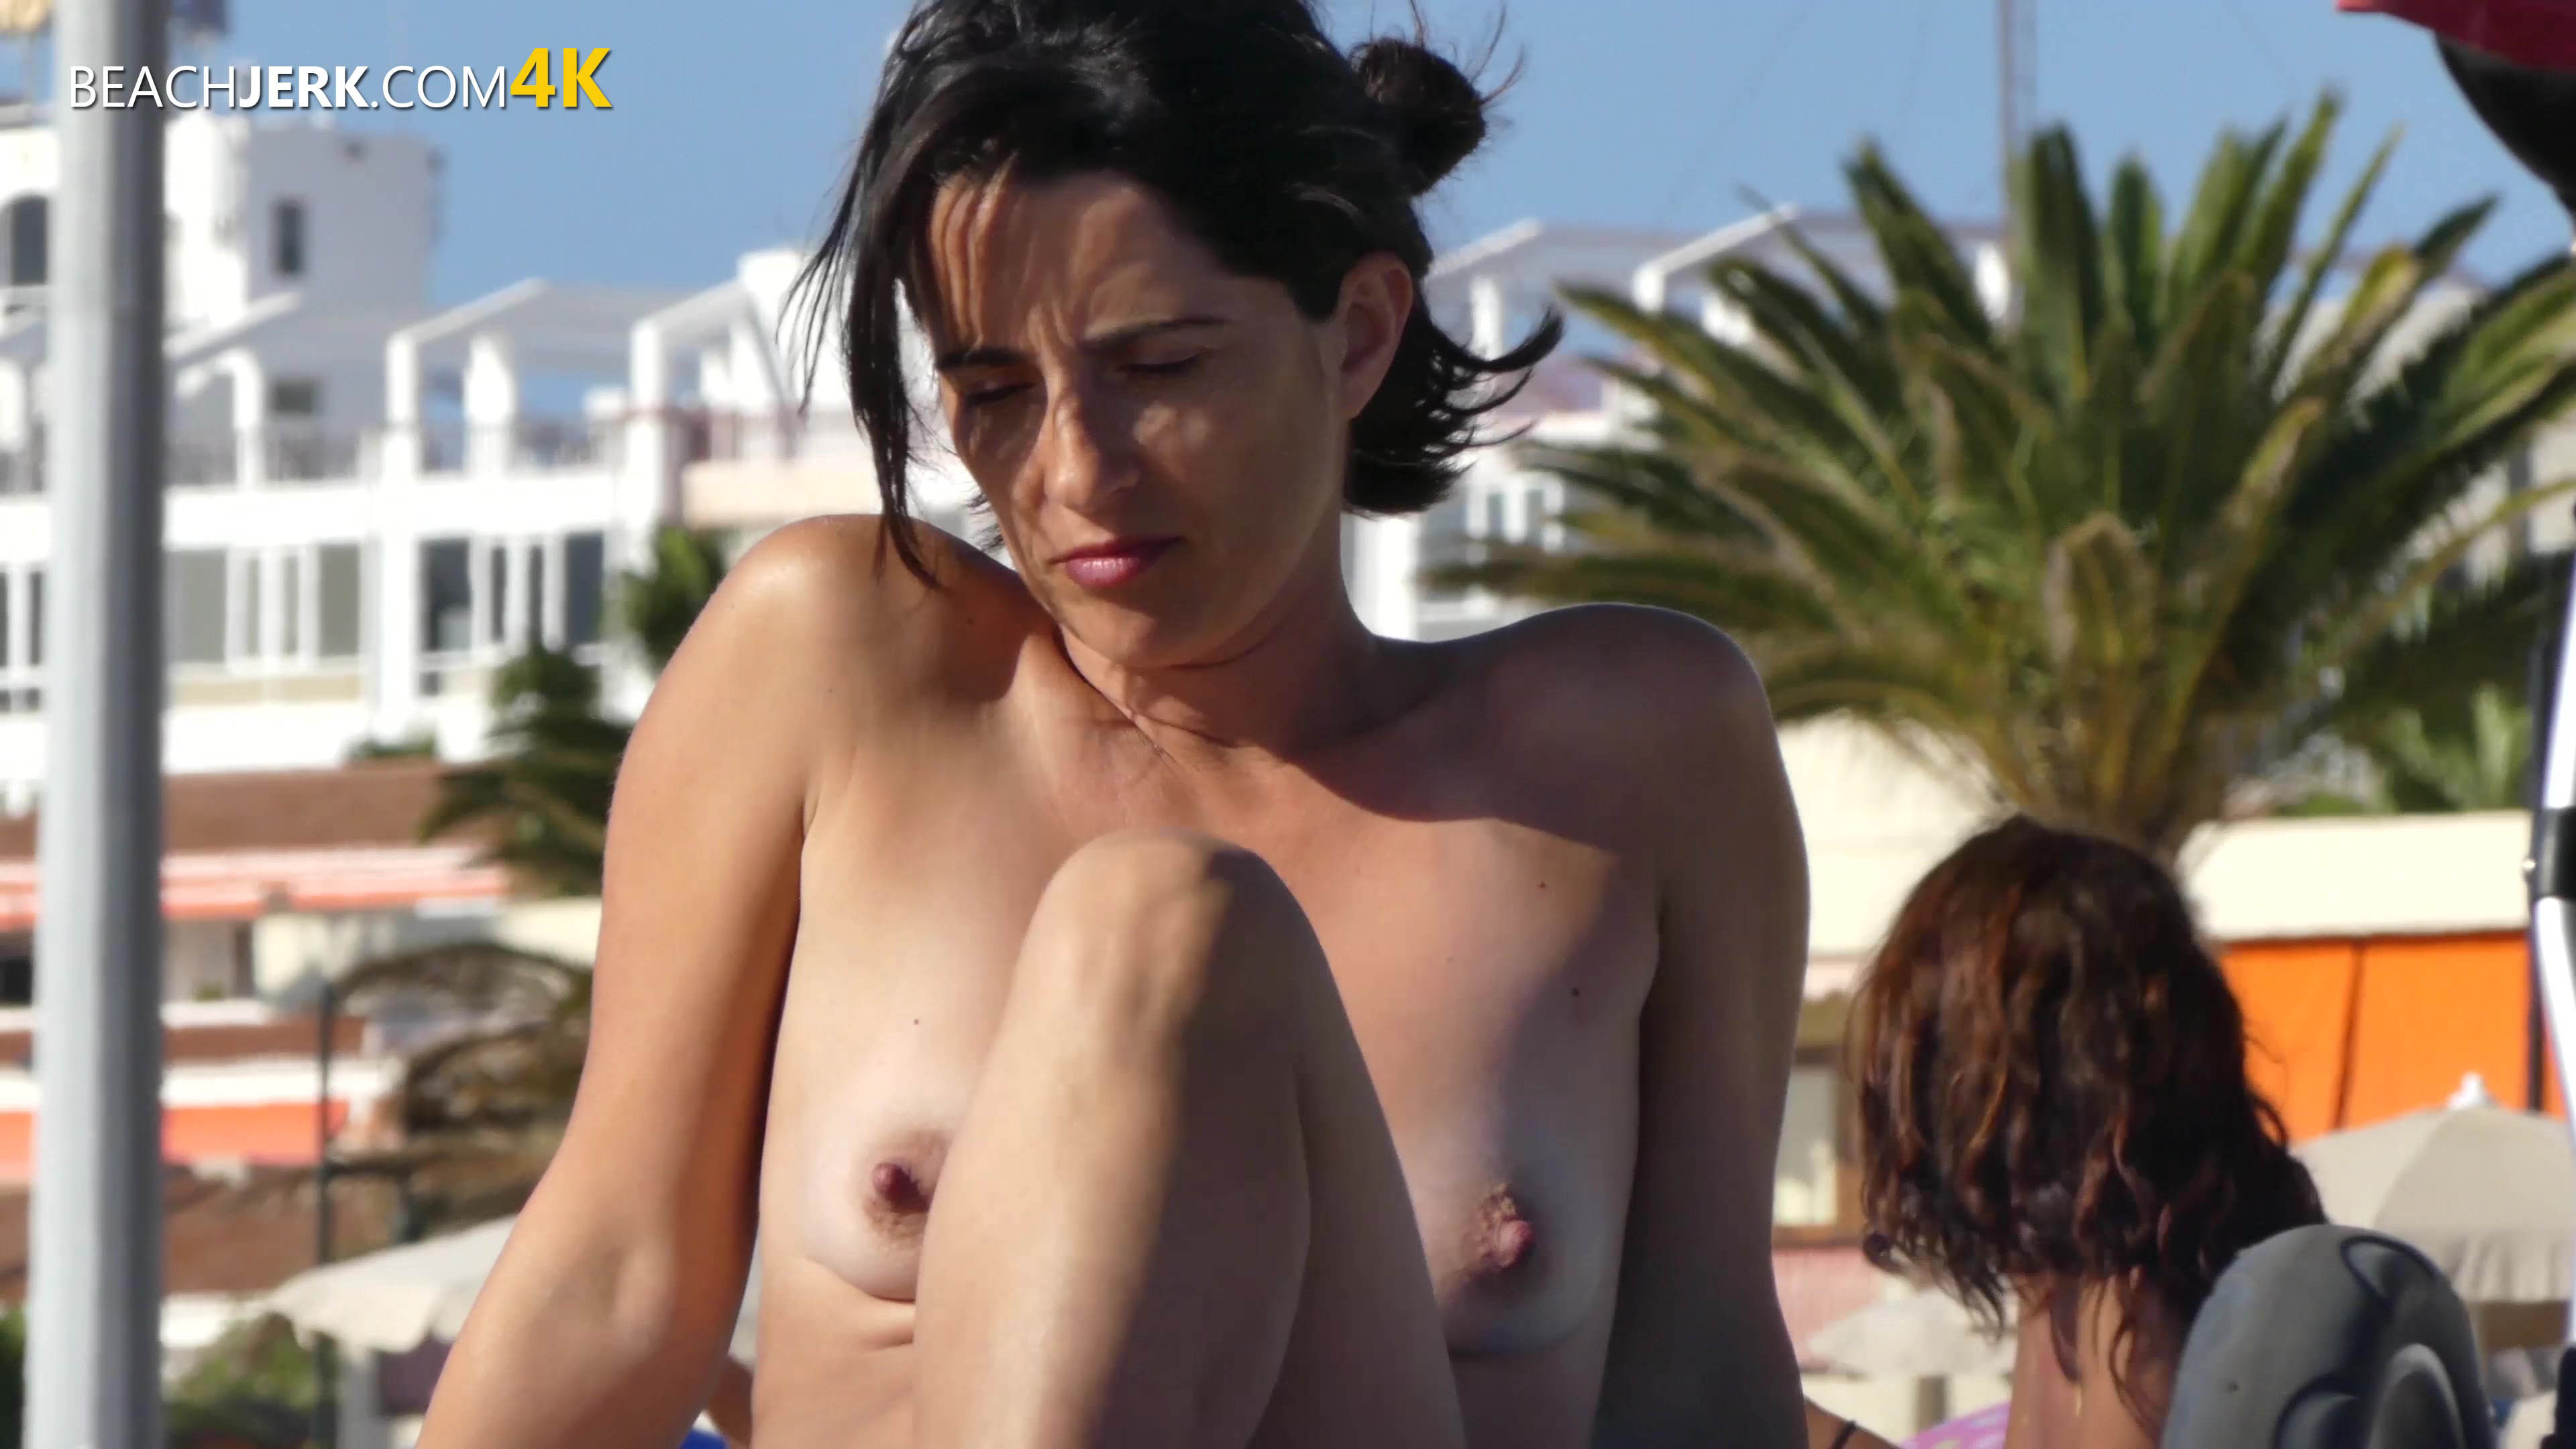 Definition of perky - 1 part 8